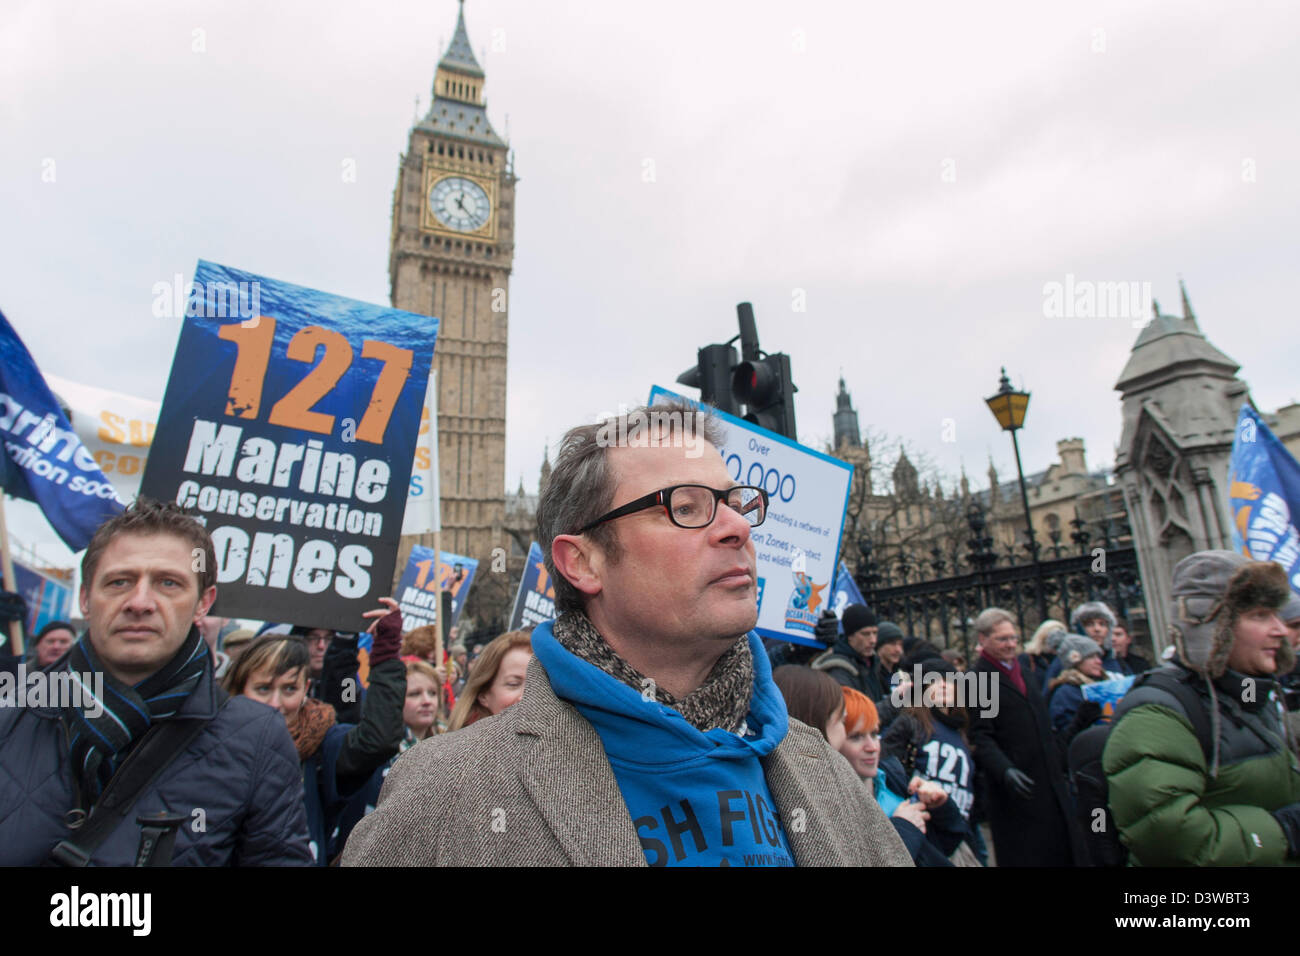 Chef Hugh Fearnley-Whittingstall rounds the house of commons towards rally in conjunction with the Marine Conservation - Stock Image